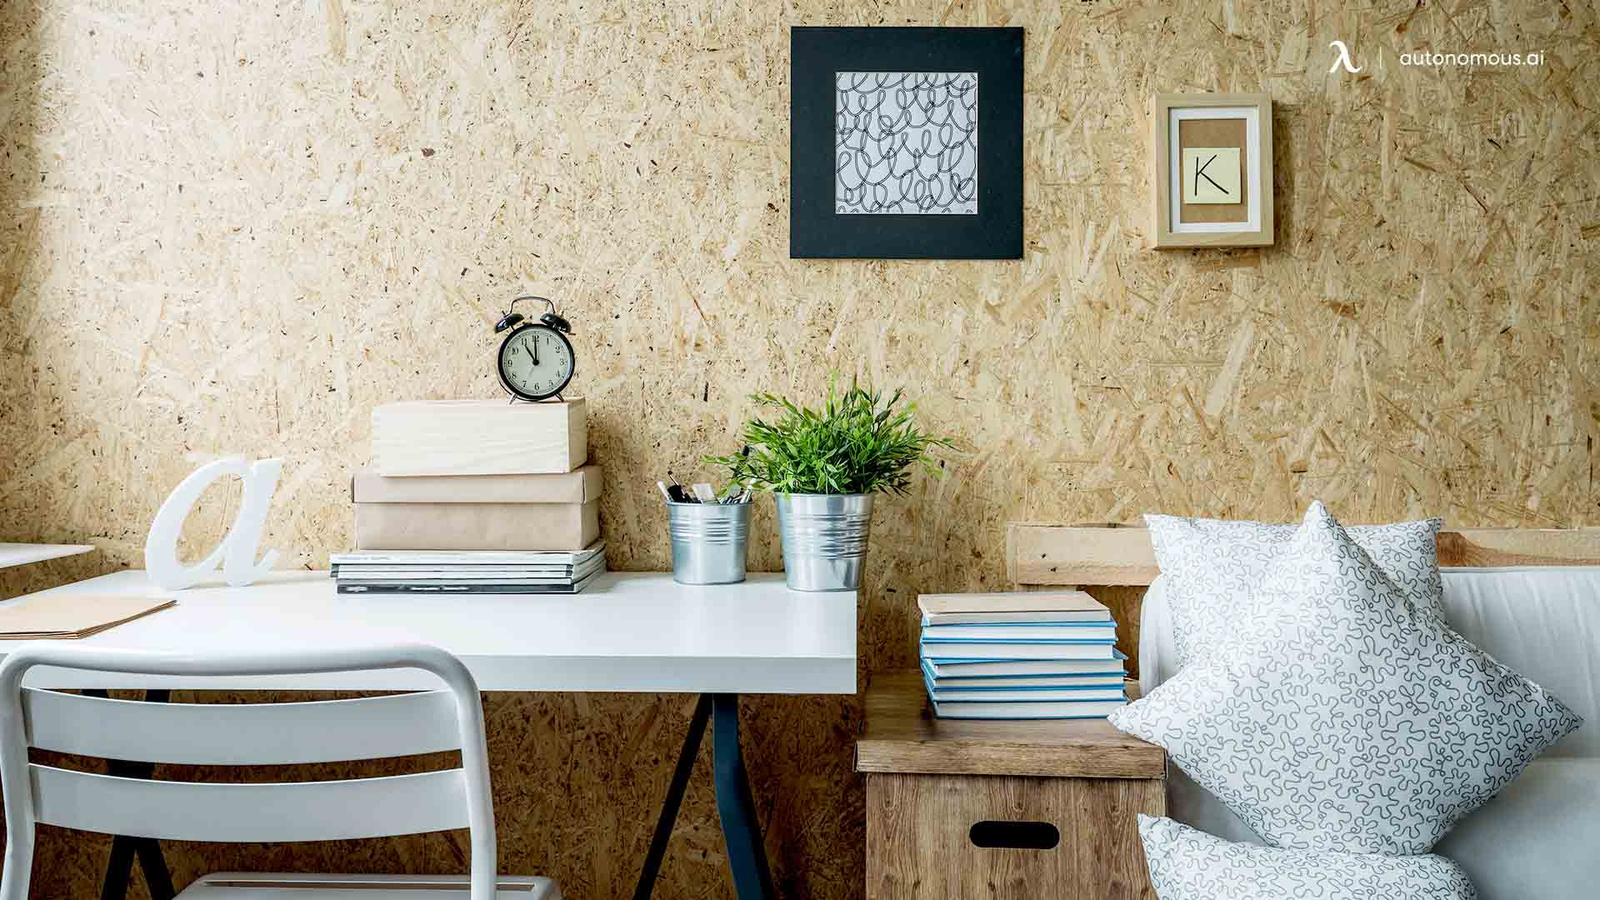 How To Create A Workspace In Bedroom Settings With 6 Ideas